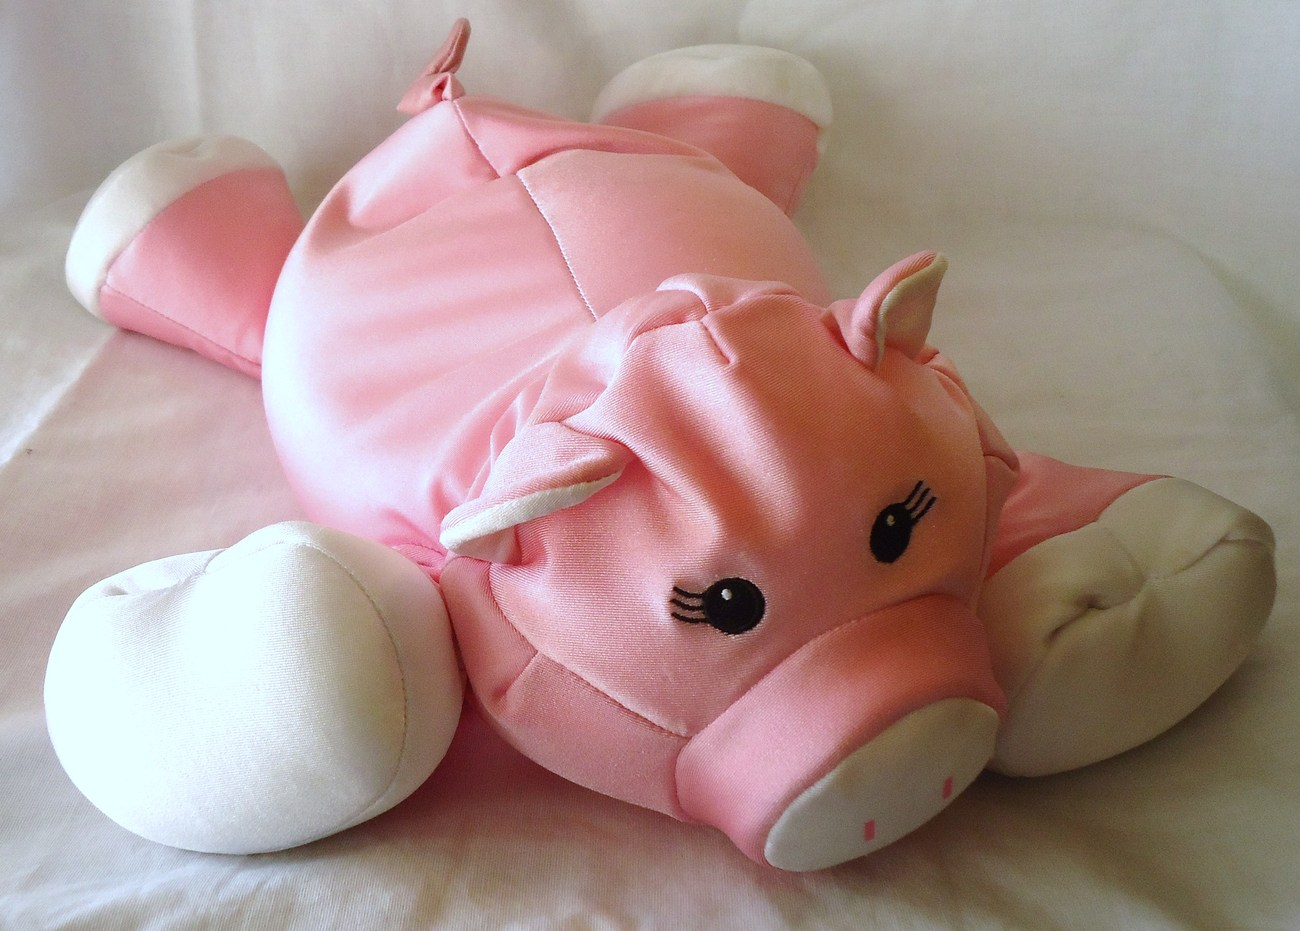 Animal Microbead Pillows : Moshi Pig Brentwood Microbead Pillow Stuffed Animal Pink Piggy Eyelashes girl - Other